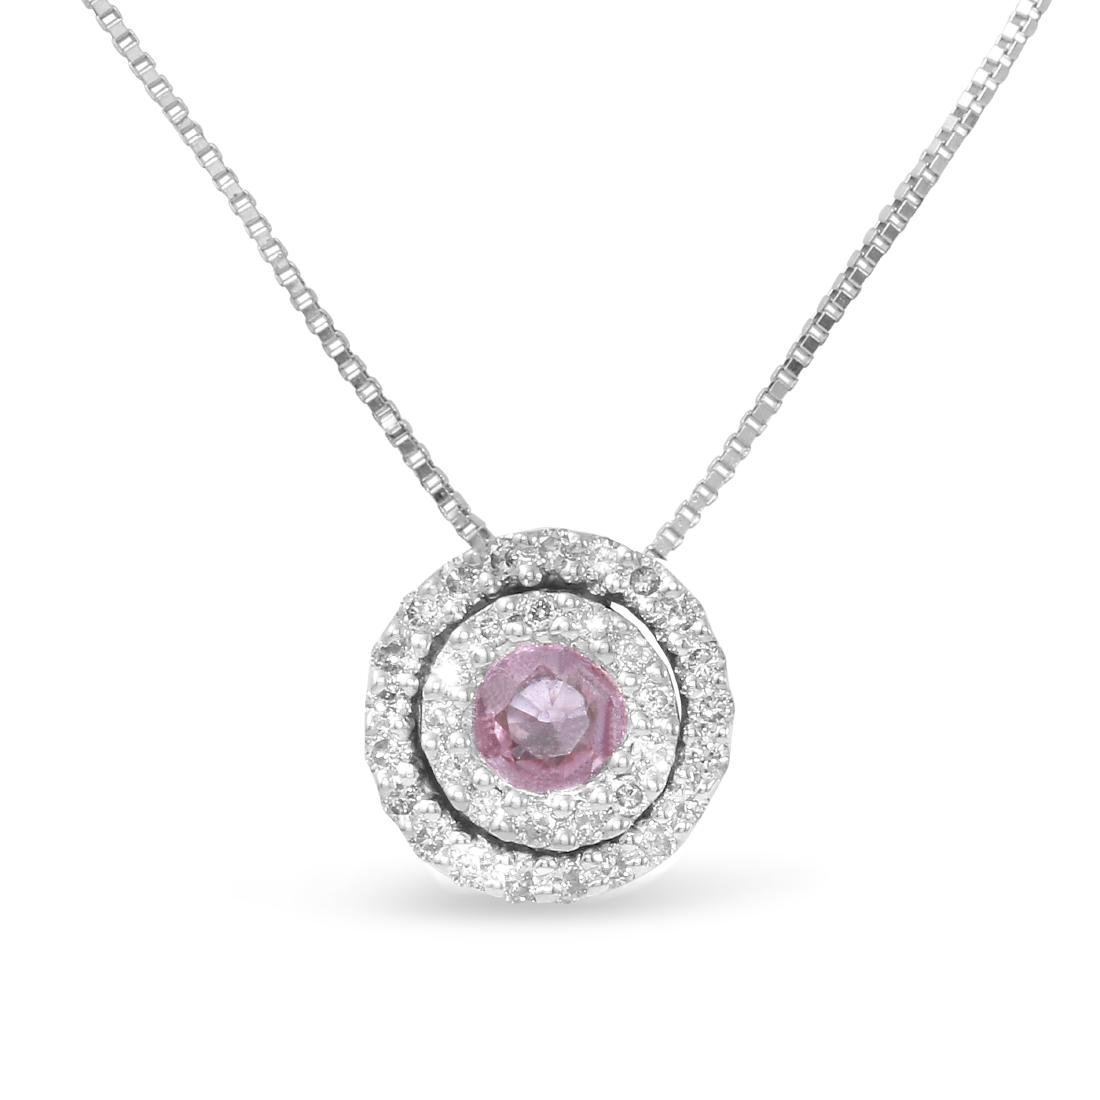 14KT White Gold 0.23ct Pink Sapphire and Diamond